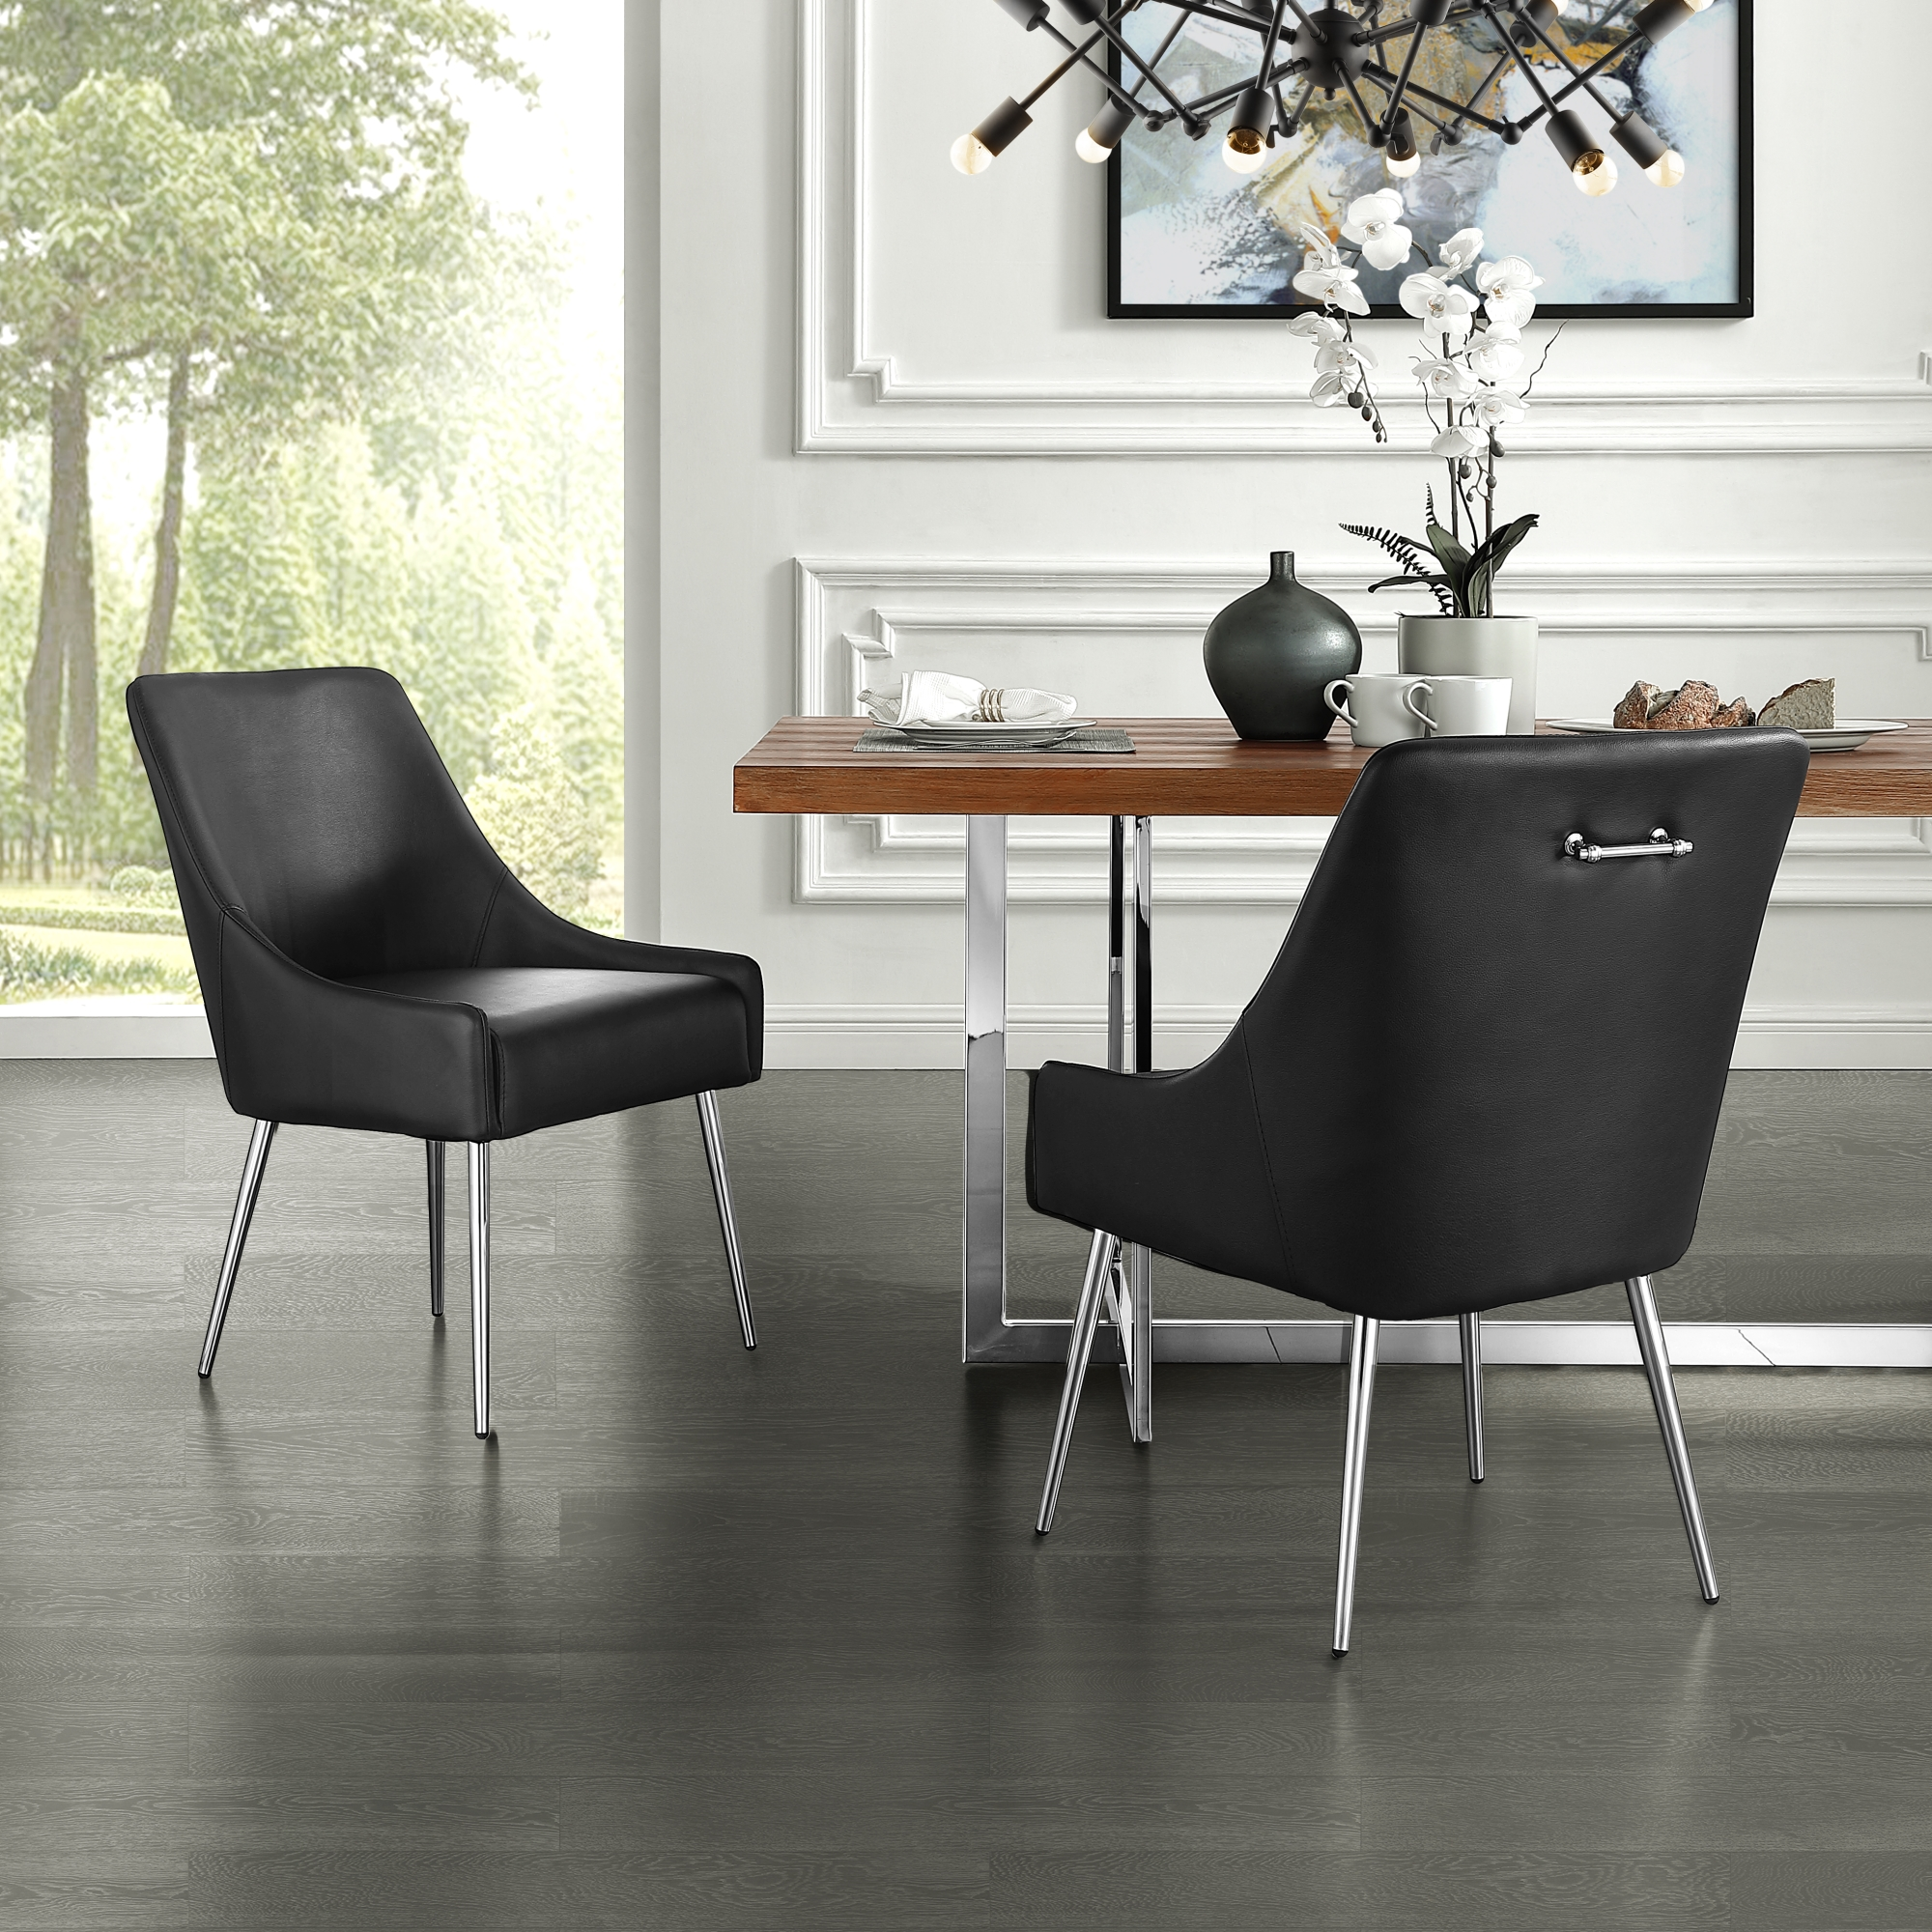 Inspired Home Black PU Leather Dining Chair Chrome Silver Finish Handle and Legs Armless